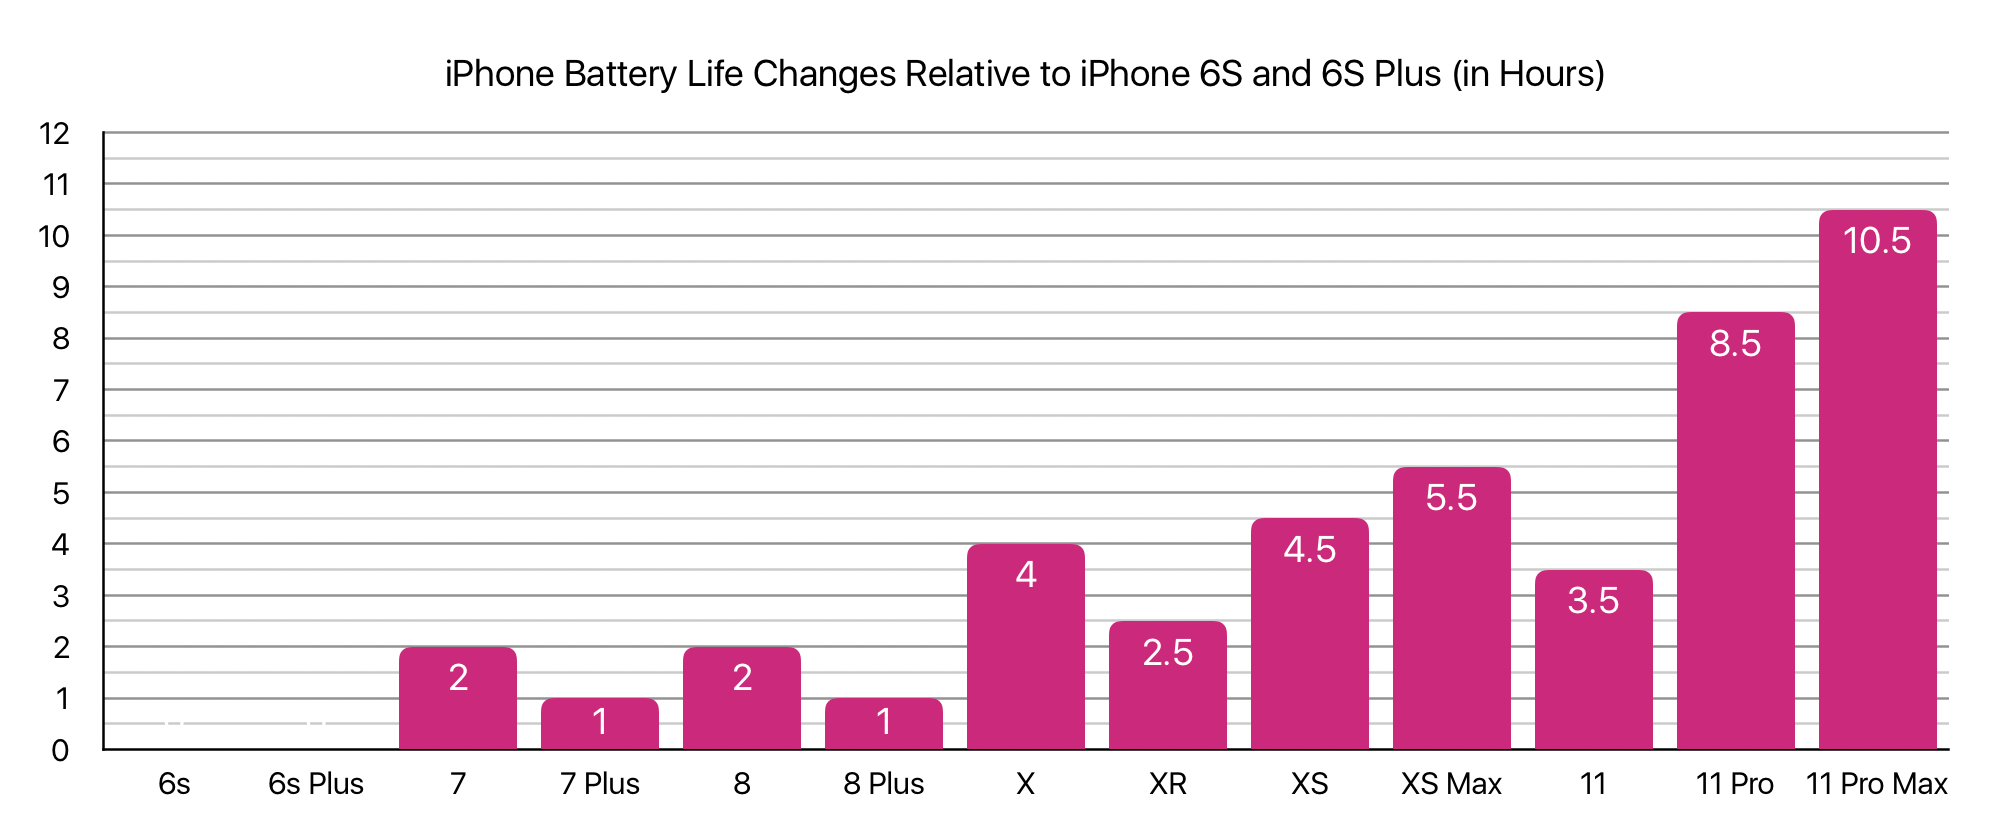 iPhone Battery Life Changes Relative to iPhone 6S and 6S Plus (in Hours)